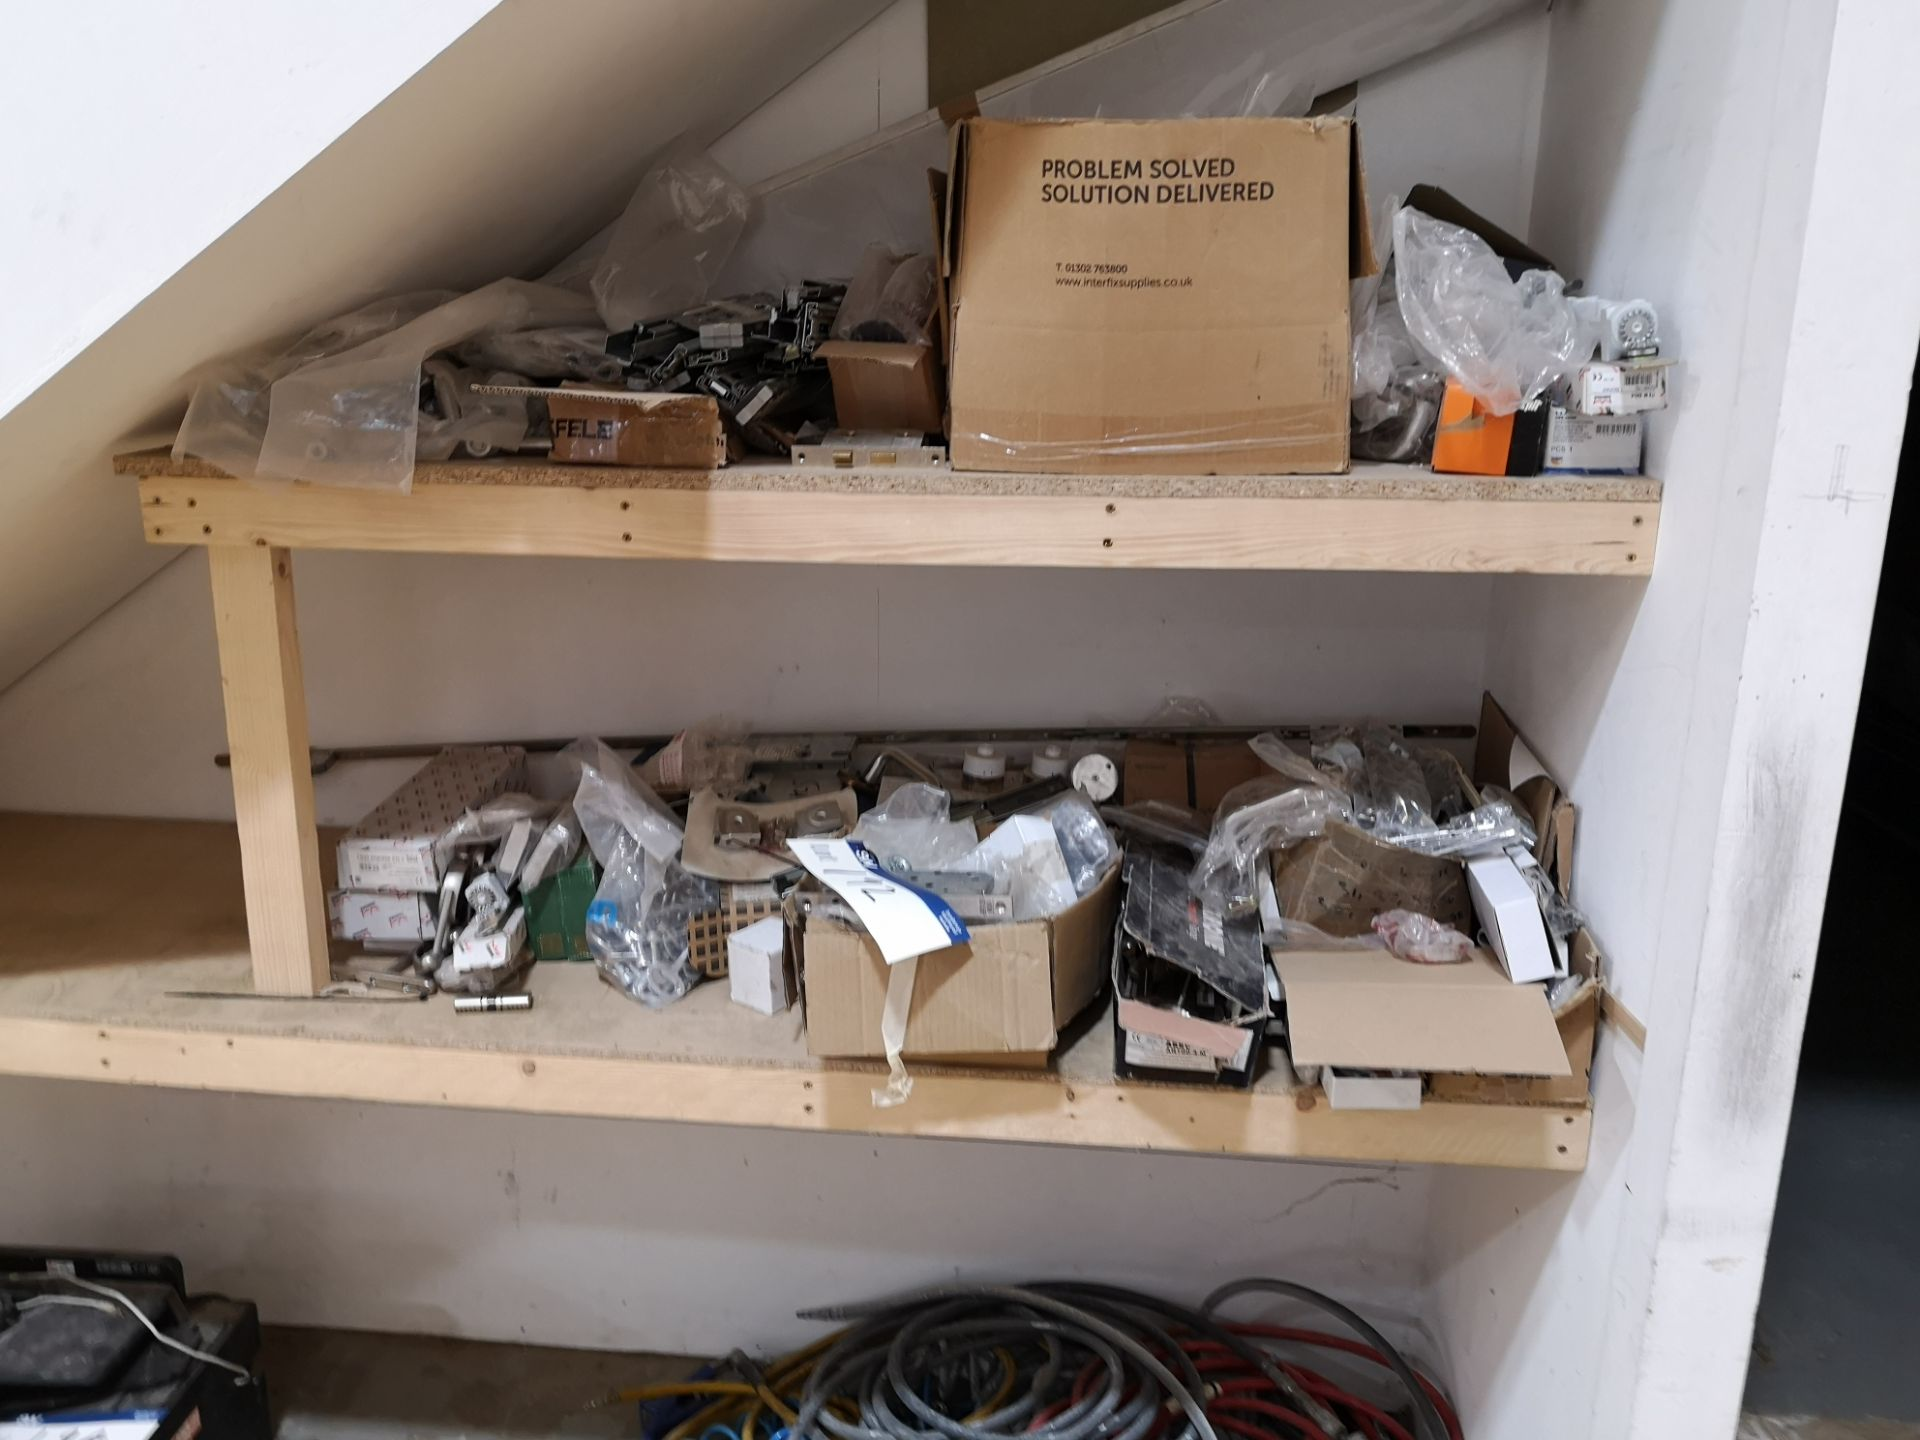 Lot 192 - Contents of Two Shelves, including fixtures, fitti